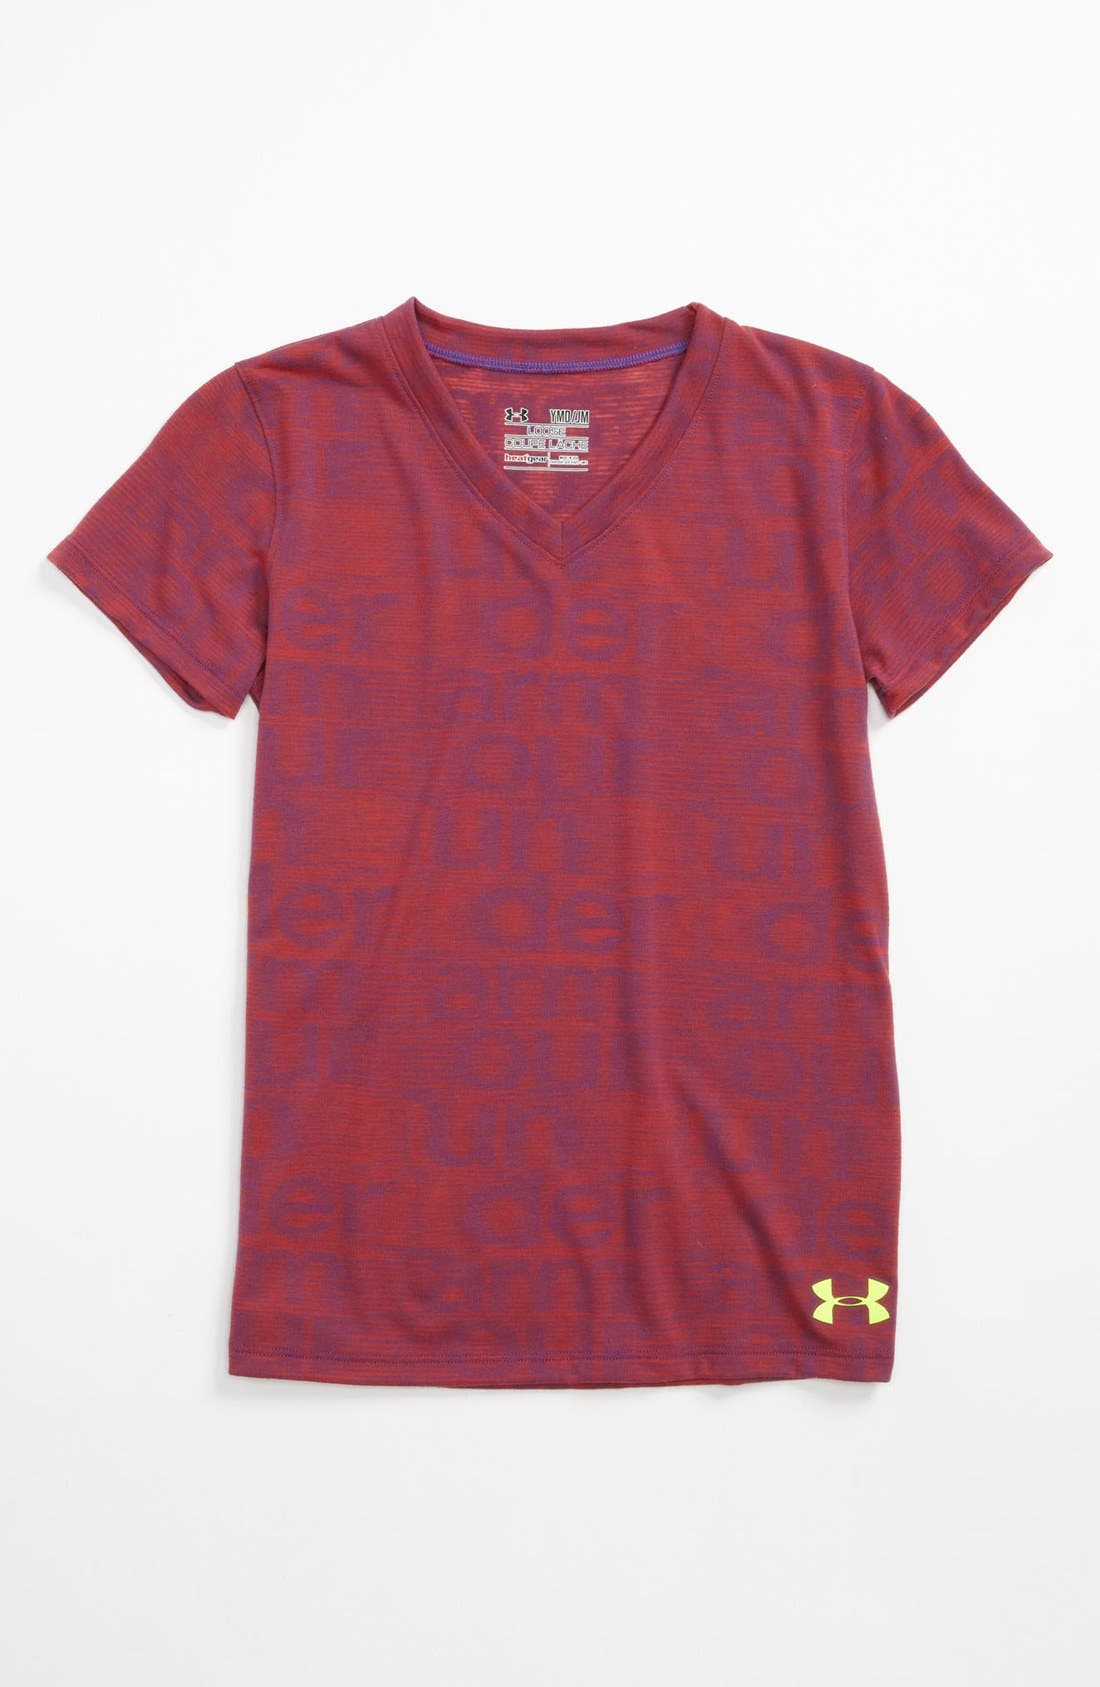 Alternate Image 1 Selected - Under Armour 'Script' Burnout Tee (Big Girls)